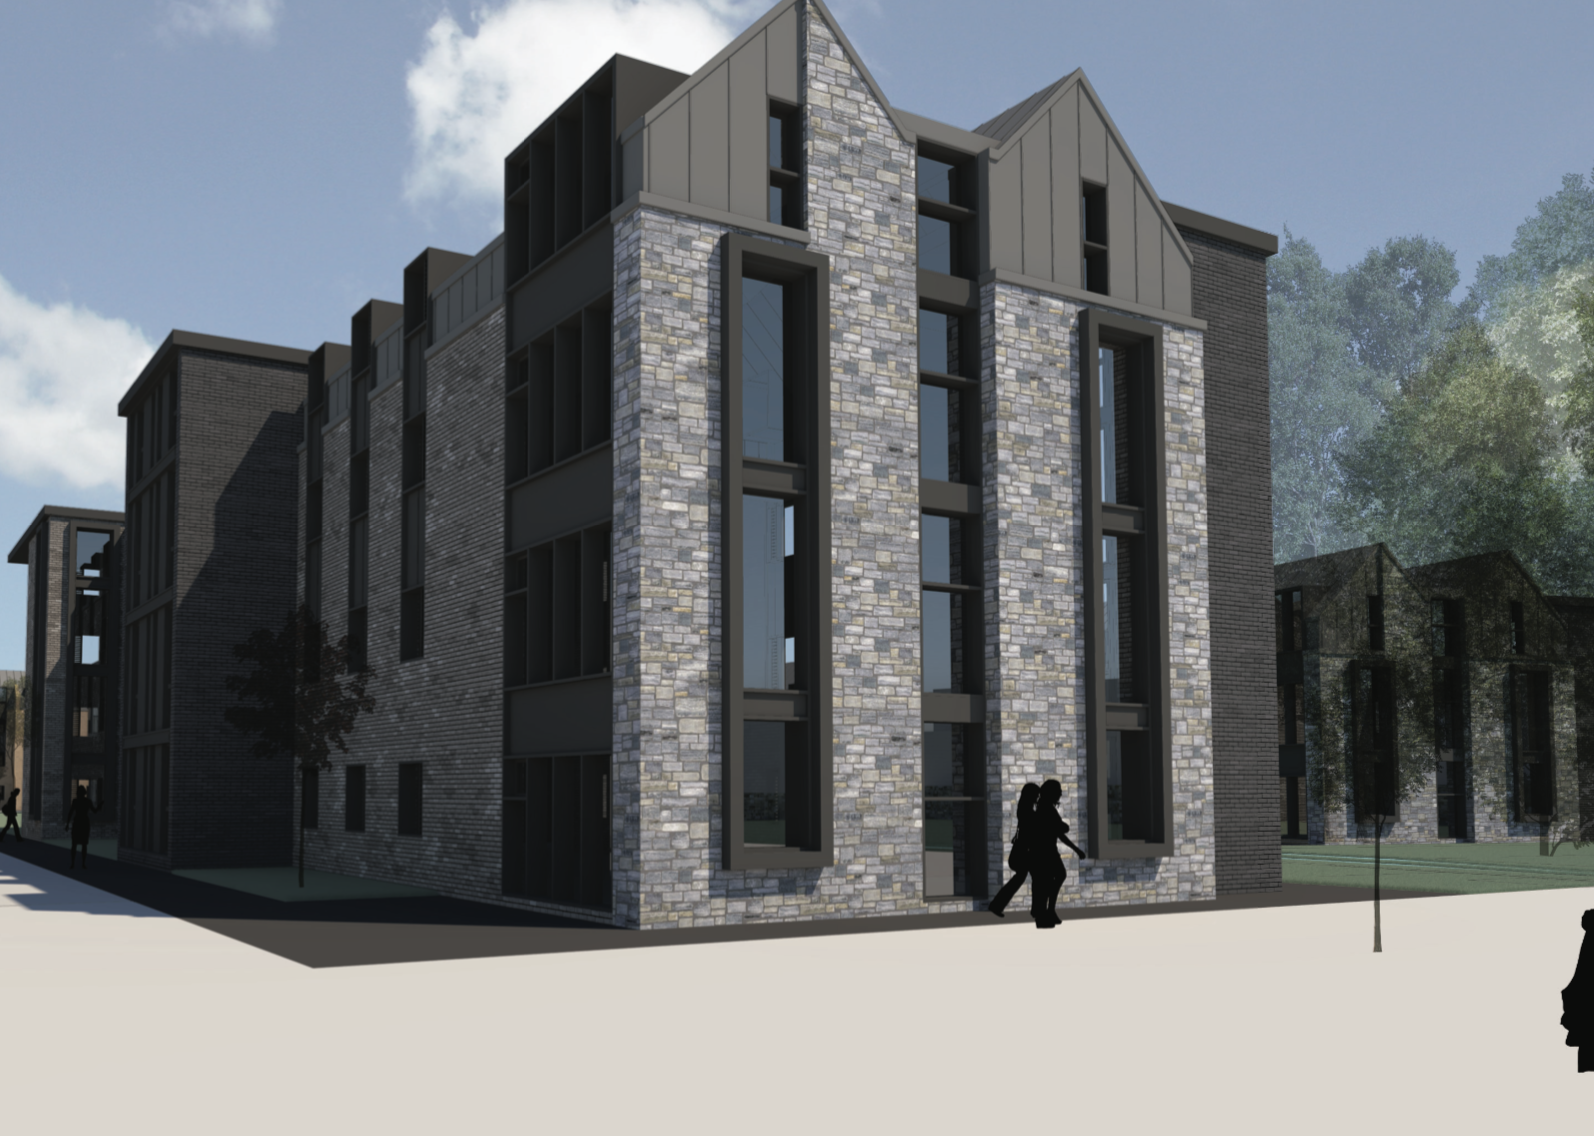 Proposed new student accommodation at East Sands, St Andrews.